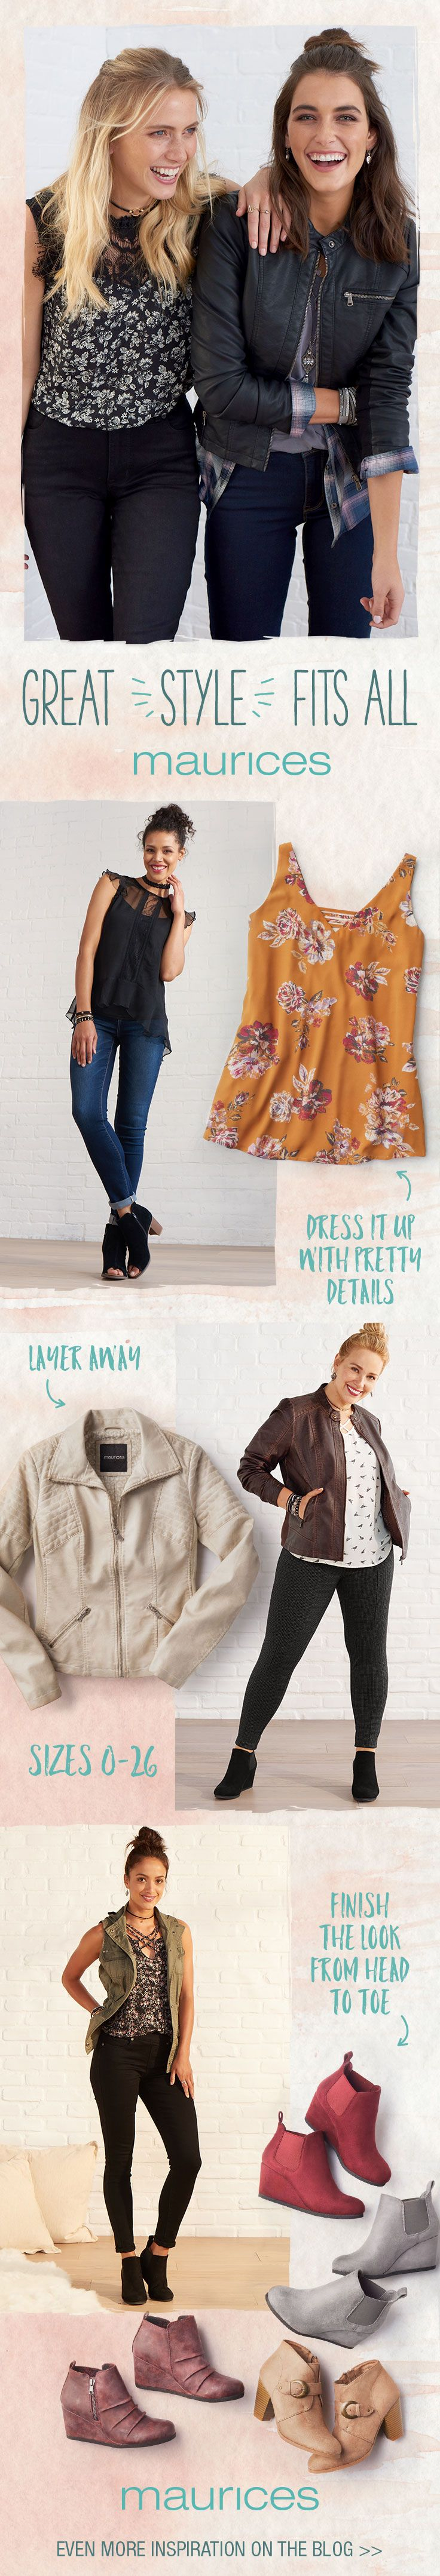 Make the most of your style with must-haves from summer to fall in sizes 0-26. Plus, say hello to FREE shipping when you pick up in store or on orders $50 or more and FREE returns to any one of our 1,000 boutique stores